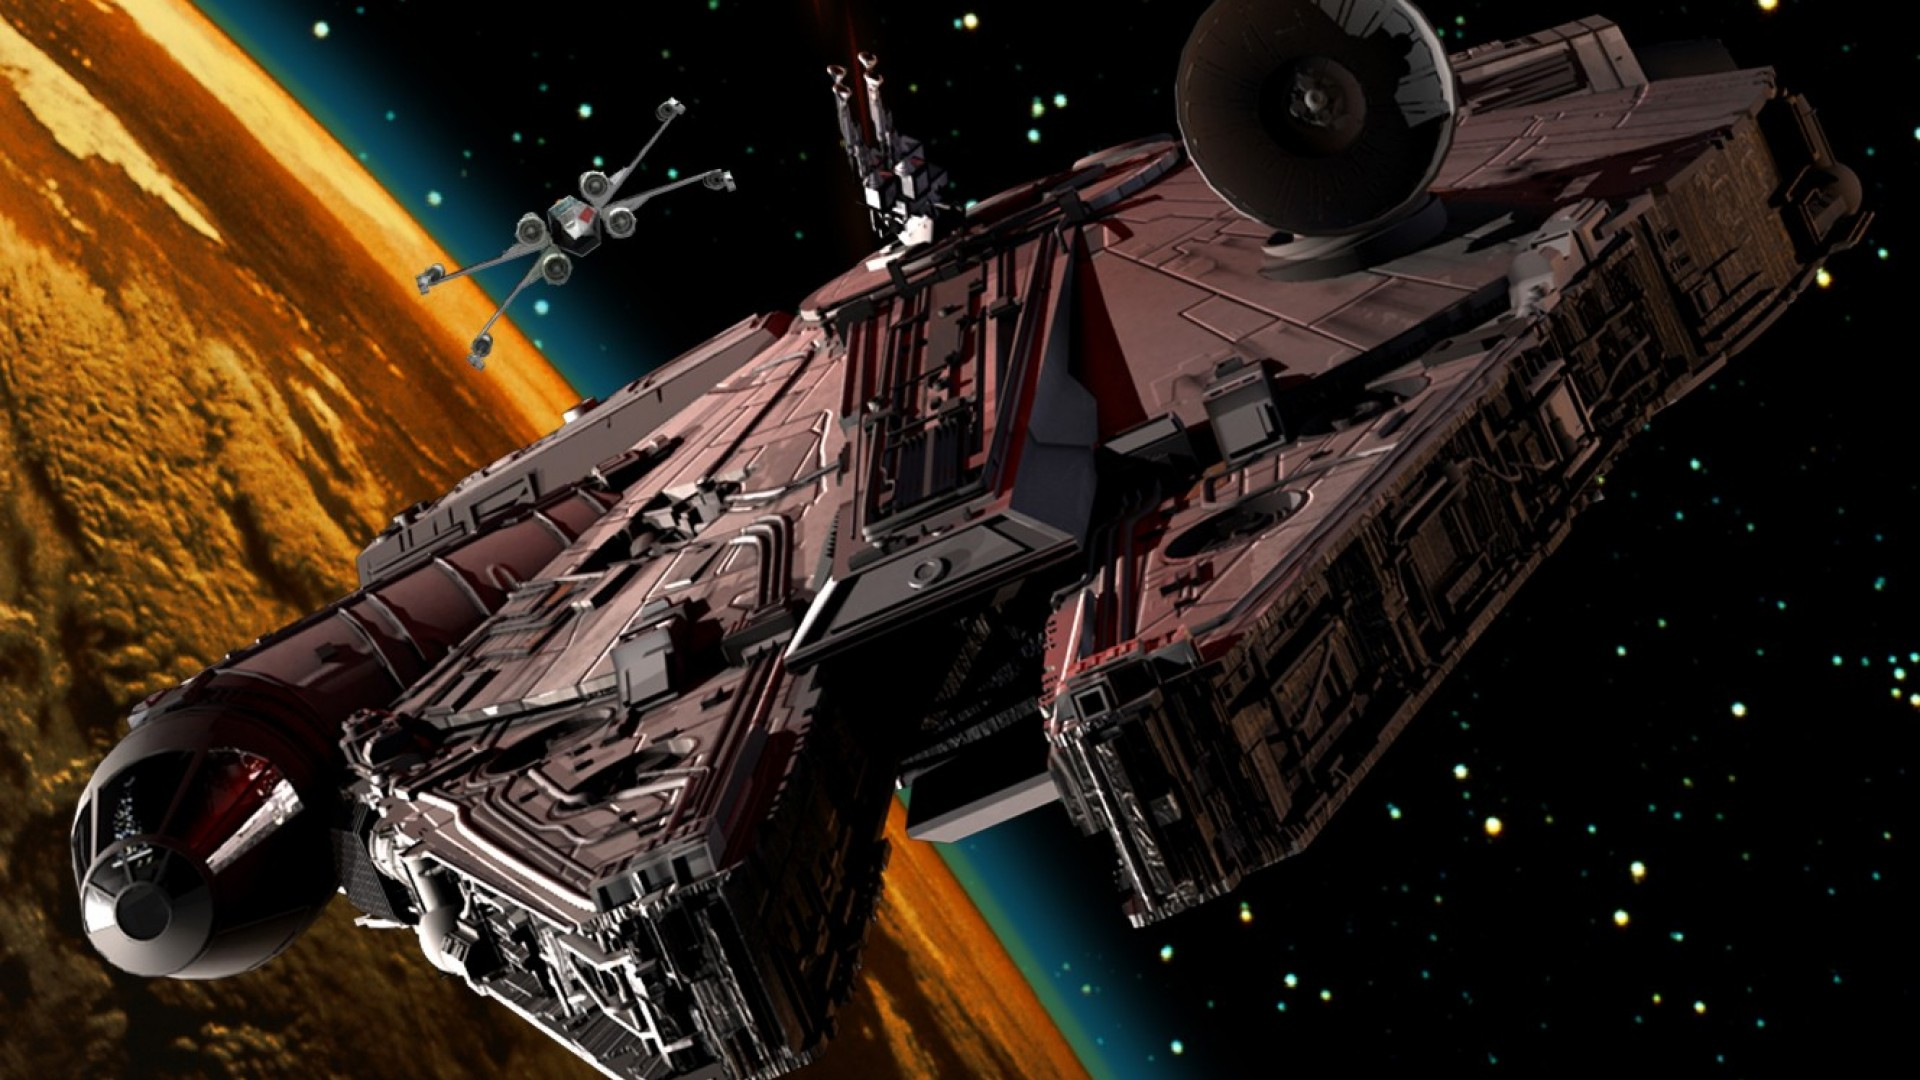 spaceships_millennium_falcon_x_wing_science_fiction_artwork_1920x1080_62698